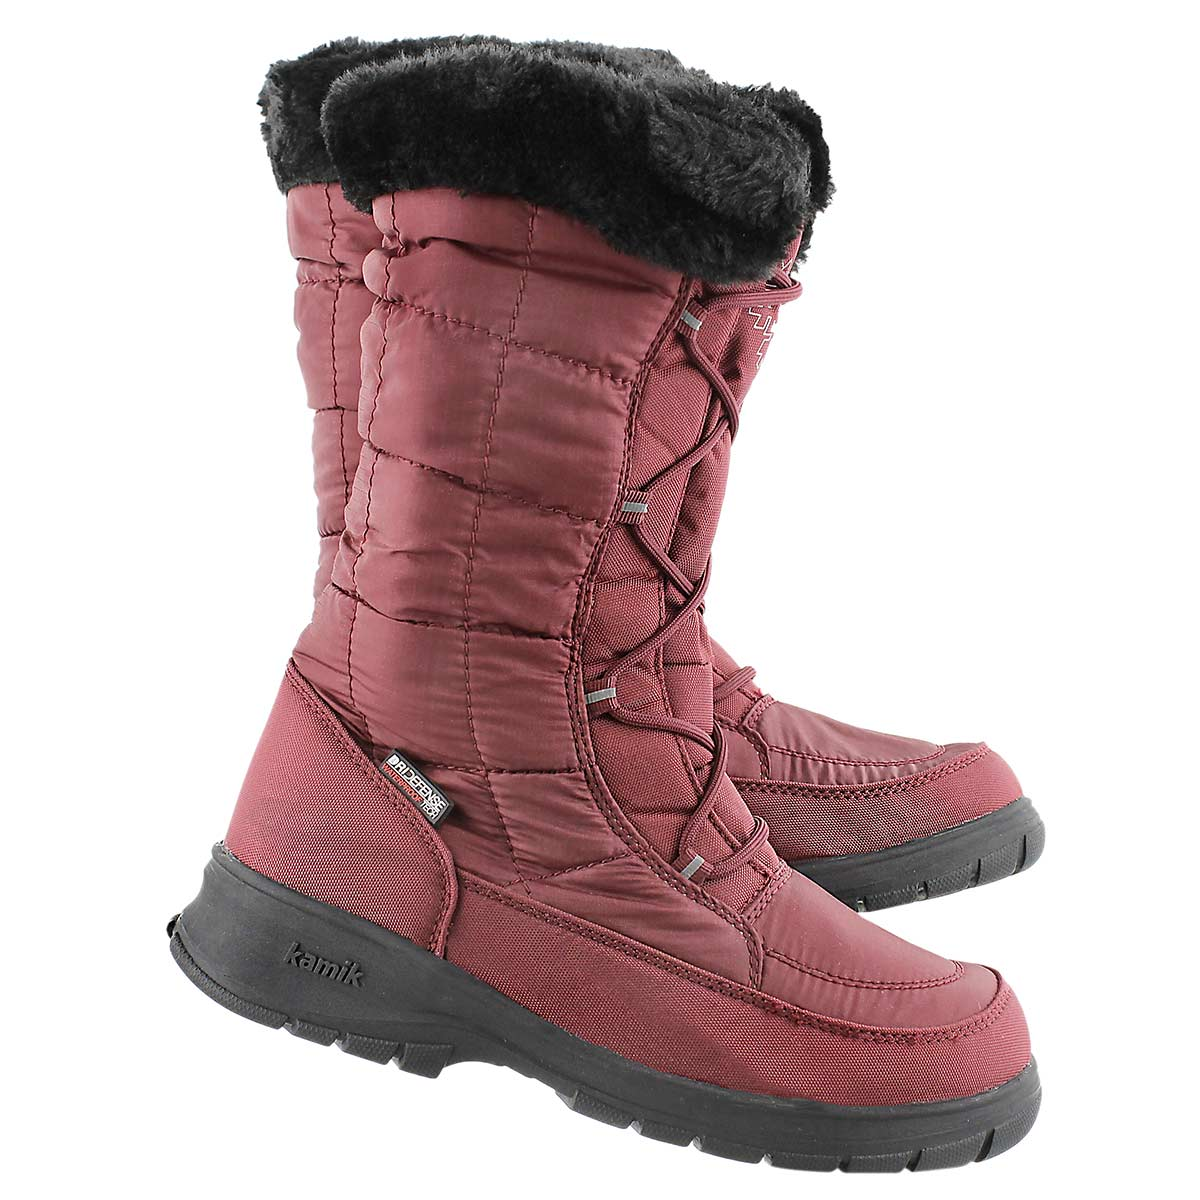 Lds New York 2 red wtpf wntr boot wide